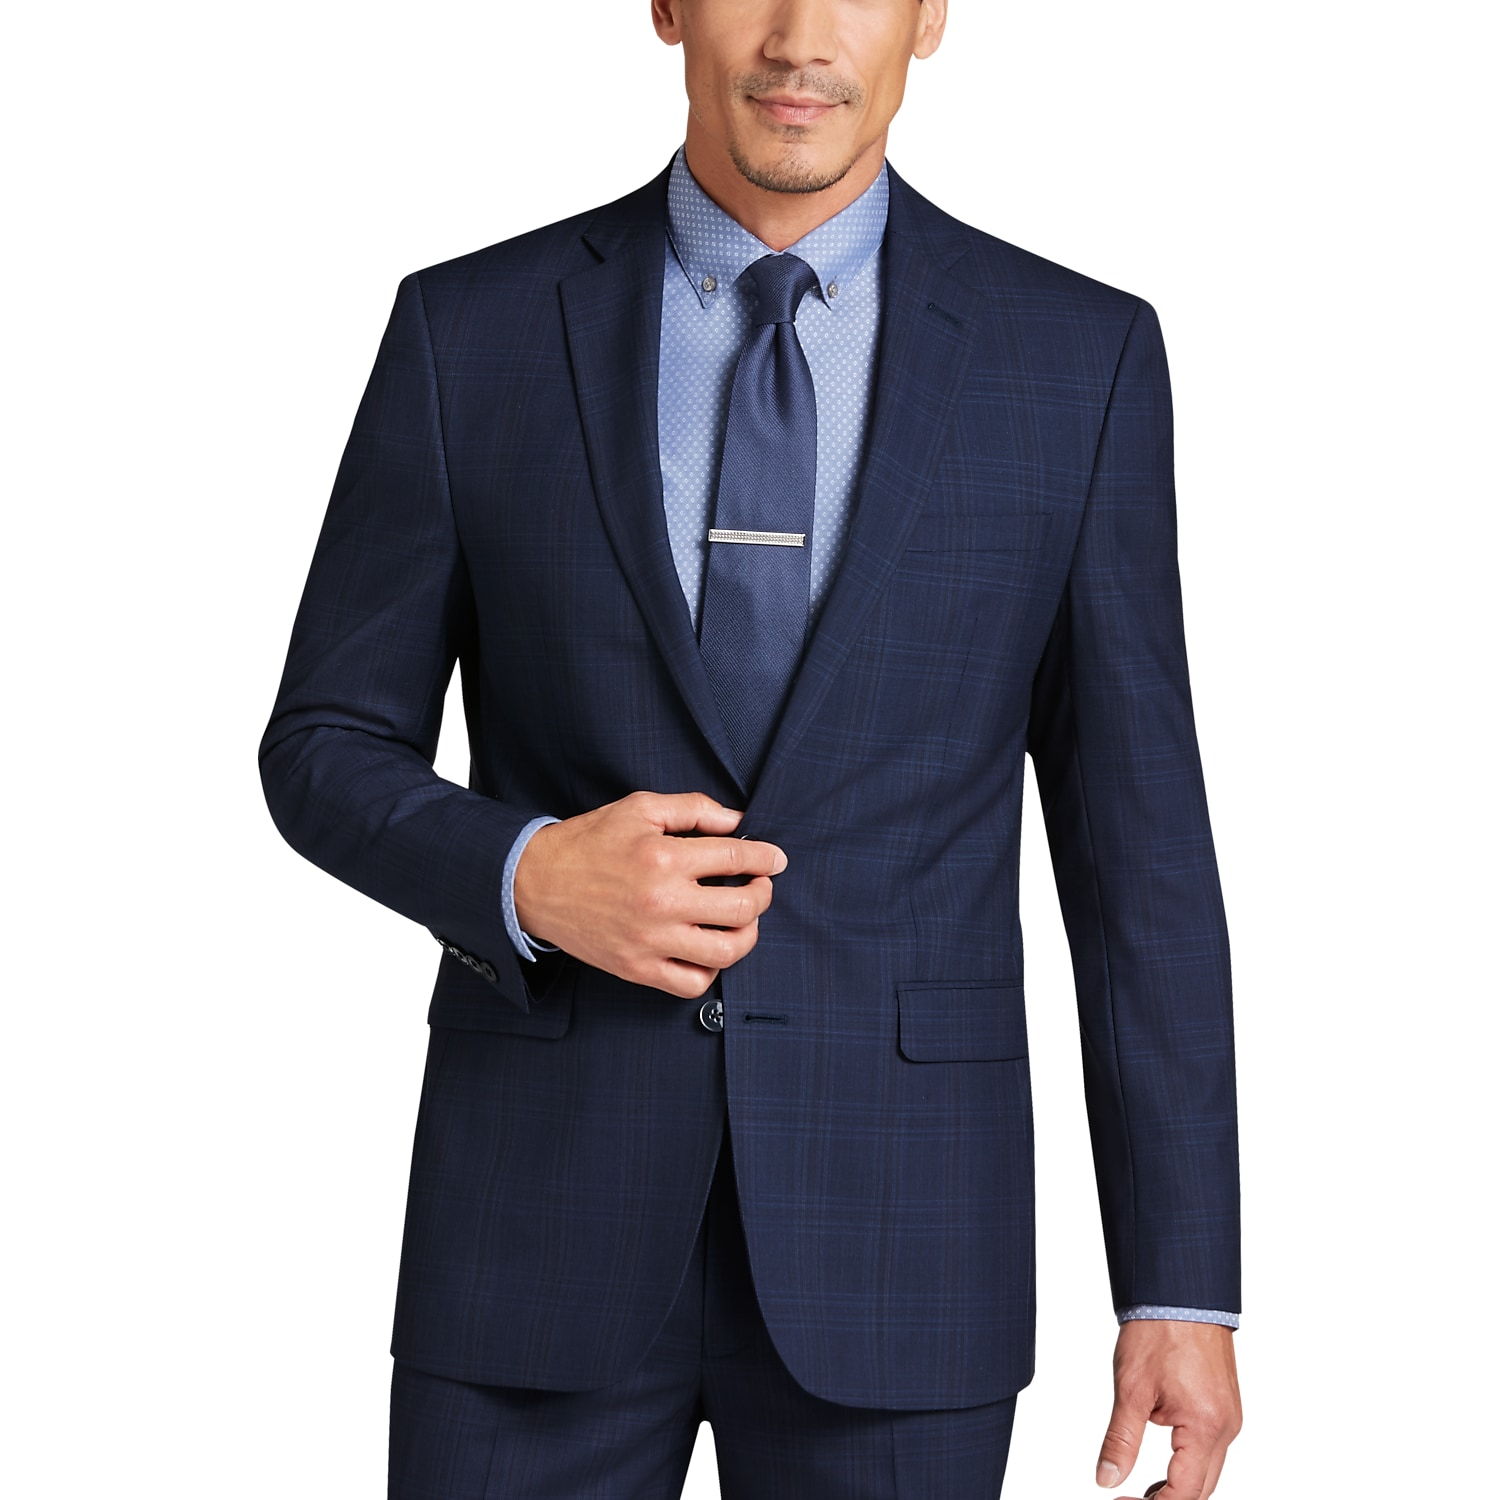 Grey Suit - Shop for Men's Grey Suits | Men's Wearhouse